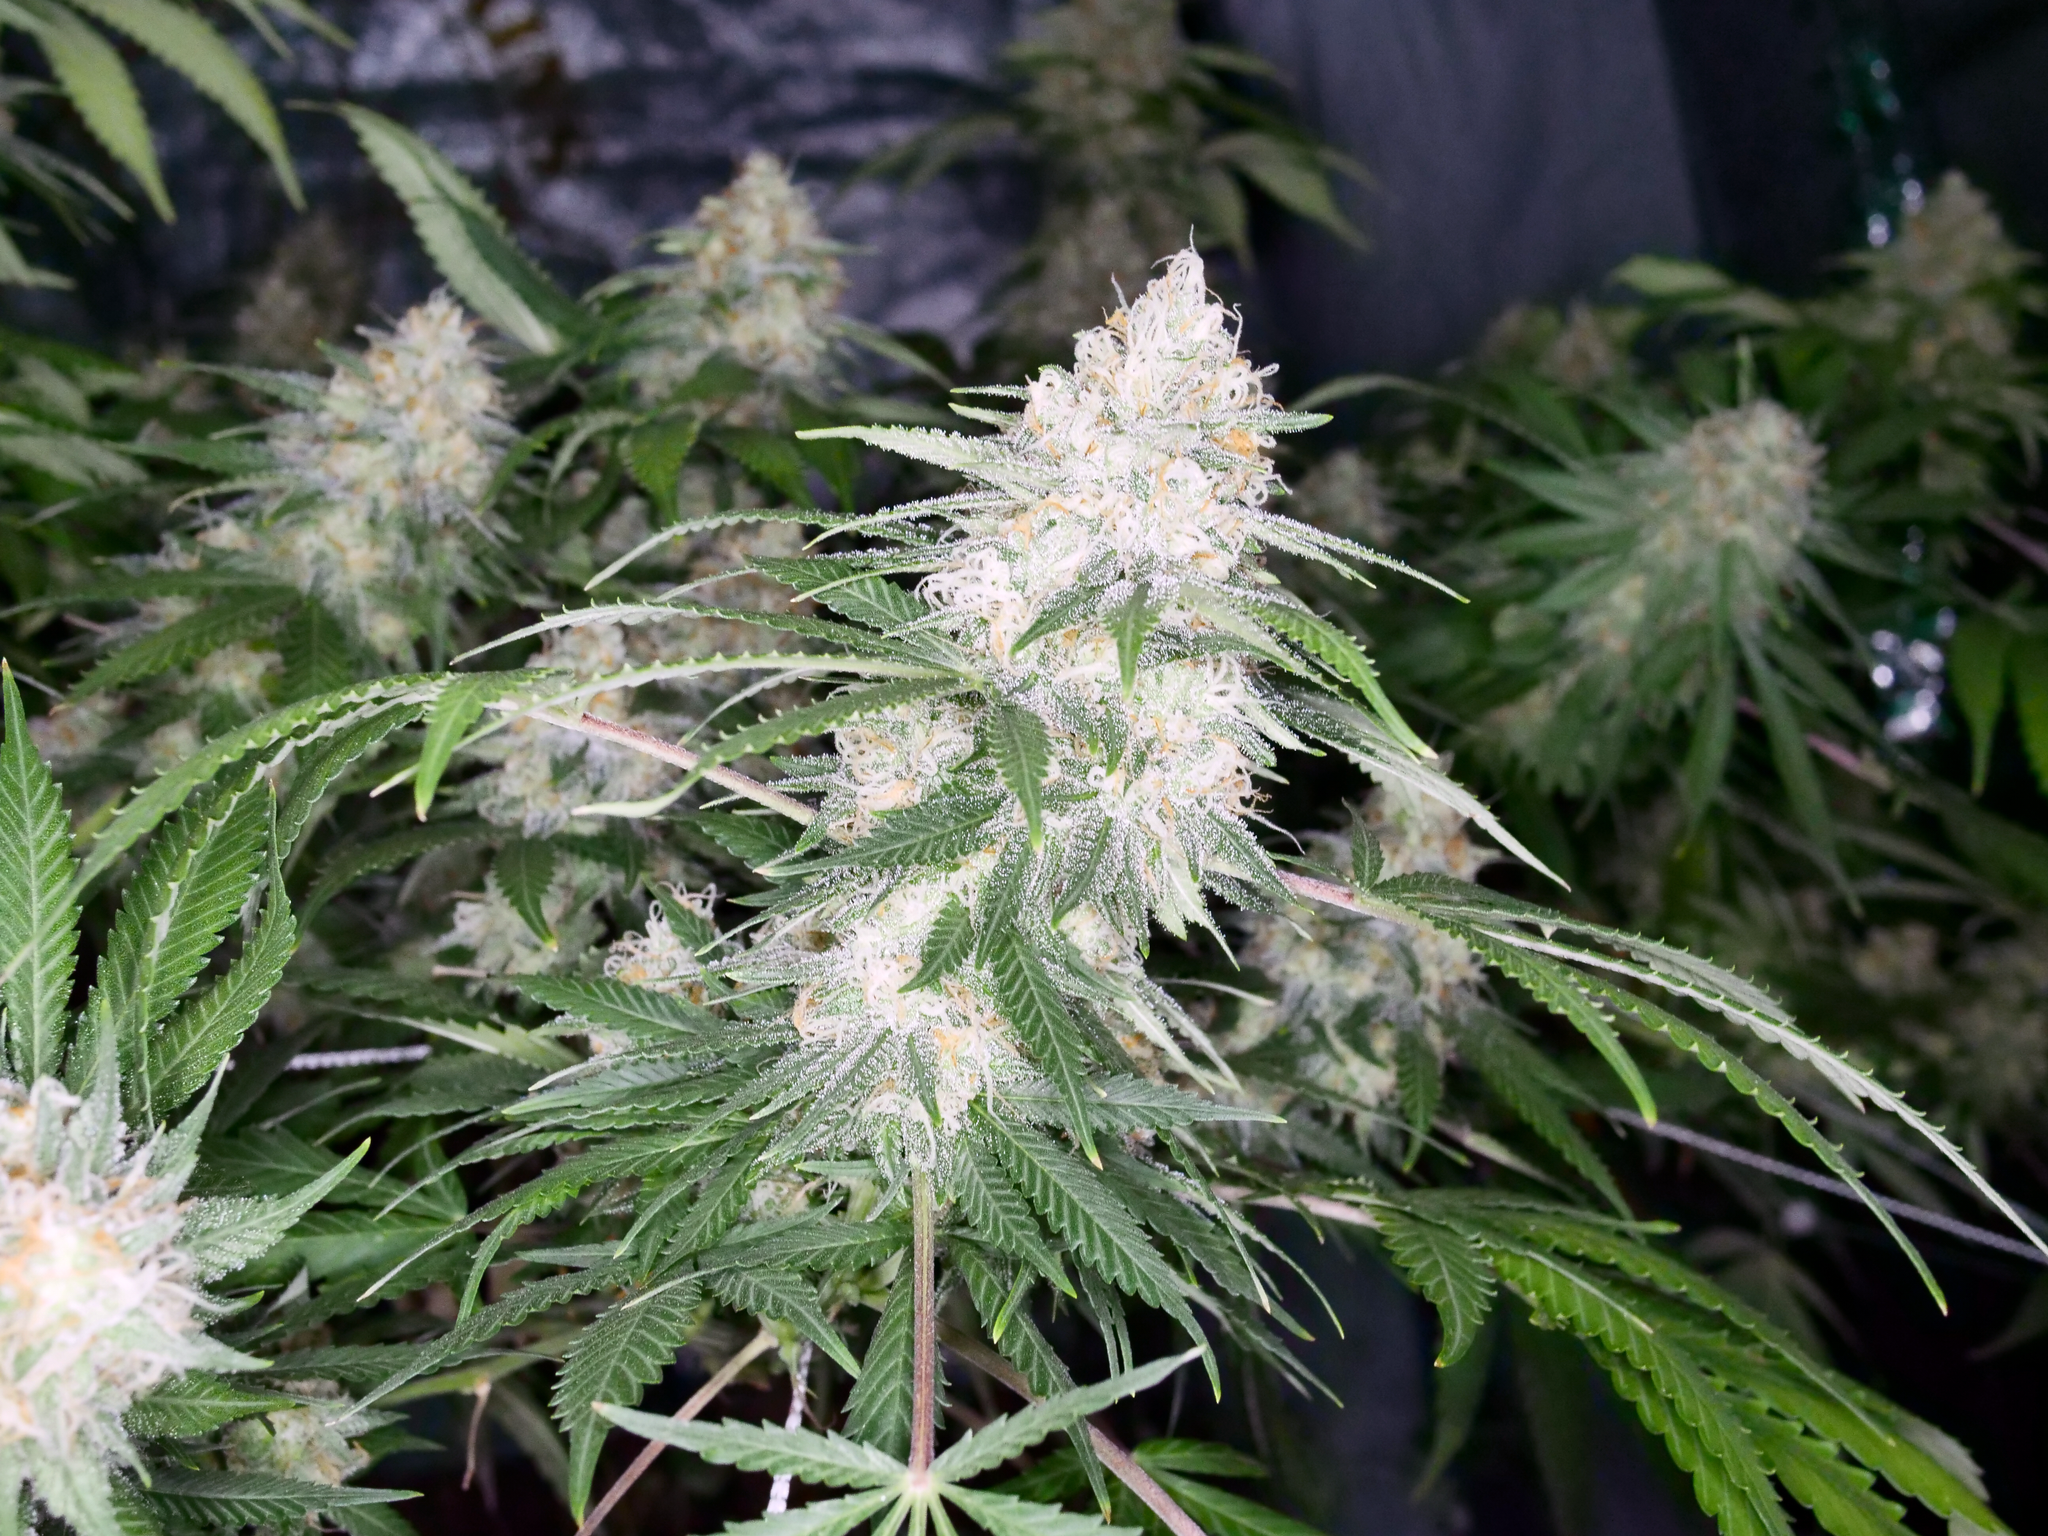 Eastcoasterlamb (Mr. E x 90's Lambsbread Jamaican Landrace Sativa) 12 Regular Seeds